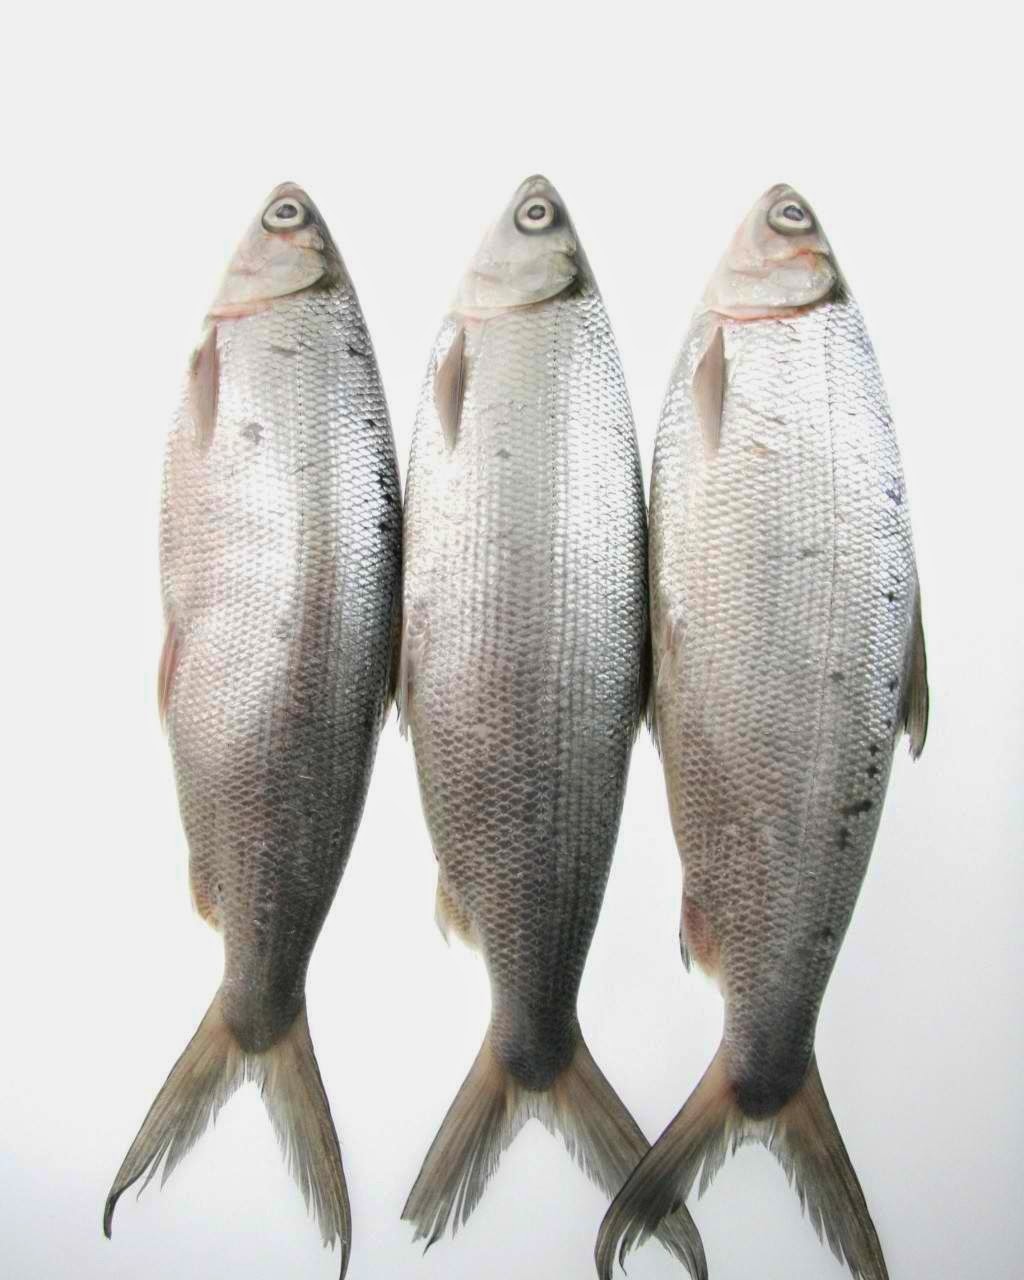 bangus or milkfish cultivation systems in These river systems generally the fishing industry also produces shrimp and bangus this is recommended for diversified farming such as the cultivation of.